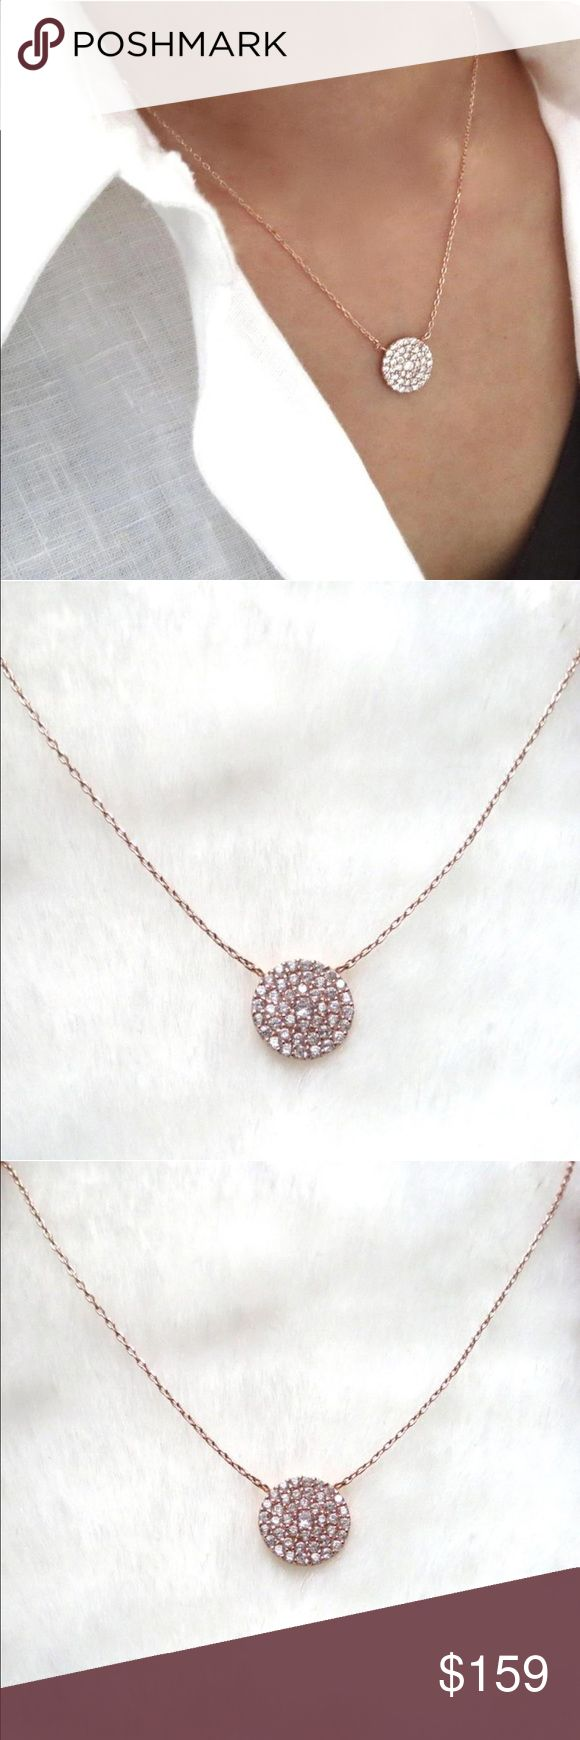 Rose gold pavé diamond disc necklace Brand New. Comes in a black velvet pouch. Still currently on elliotfrancis.com for $238. ROSE GOLD PLATED STERLING SILVER PAVE CRYSTAL DISC NECKLACE.  THIS BEAUTIFUL NECKLACE'S FOCAL POINT IS A PAVE DISC FEATURING MORE THAN 40 MICRO CZ FAUX DIAMONDS IN A SETTING  ~  ROSE GOLD PLATED STERLING SILVER  925 STAMPED  SIGNATURE ELLIOT FRANCIS LOGO CHARM  MADE IN ITALY  ~  APPROX 16 INCHES  DISC: 12MM Elliot Francis Jewelry Necklaces